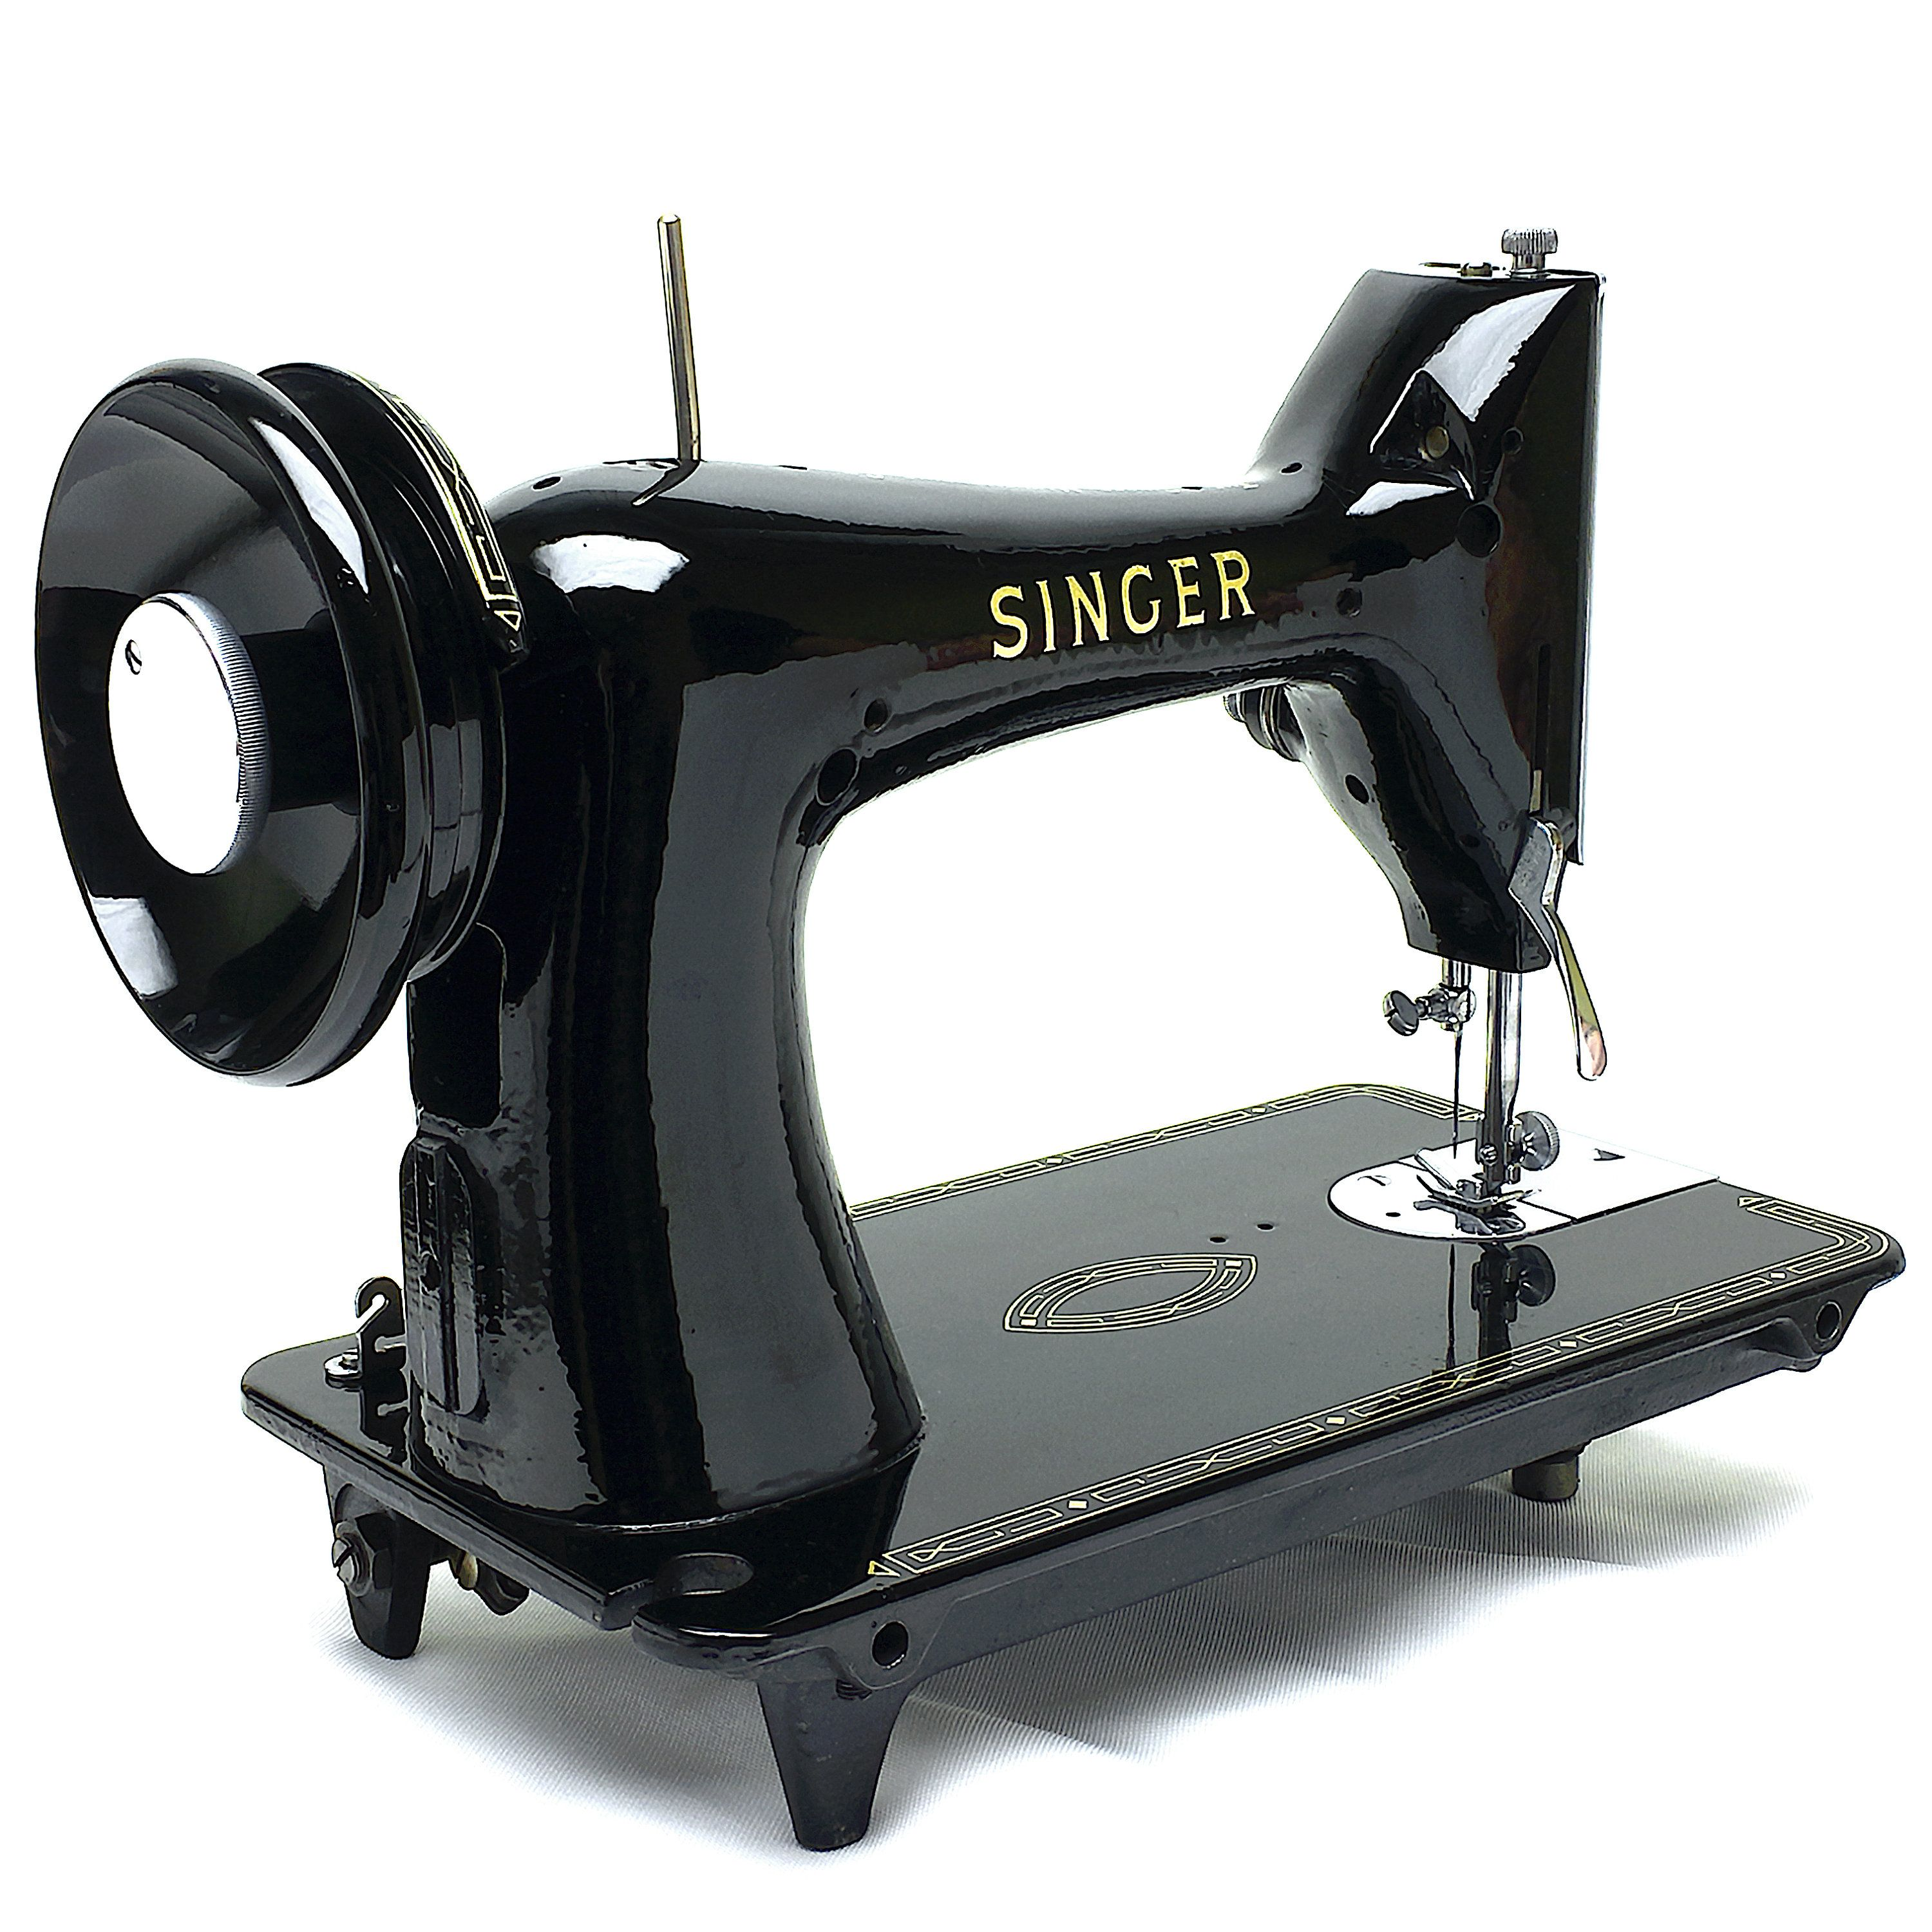 Where To Buy Singer Sewing Machines Near Me